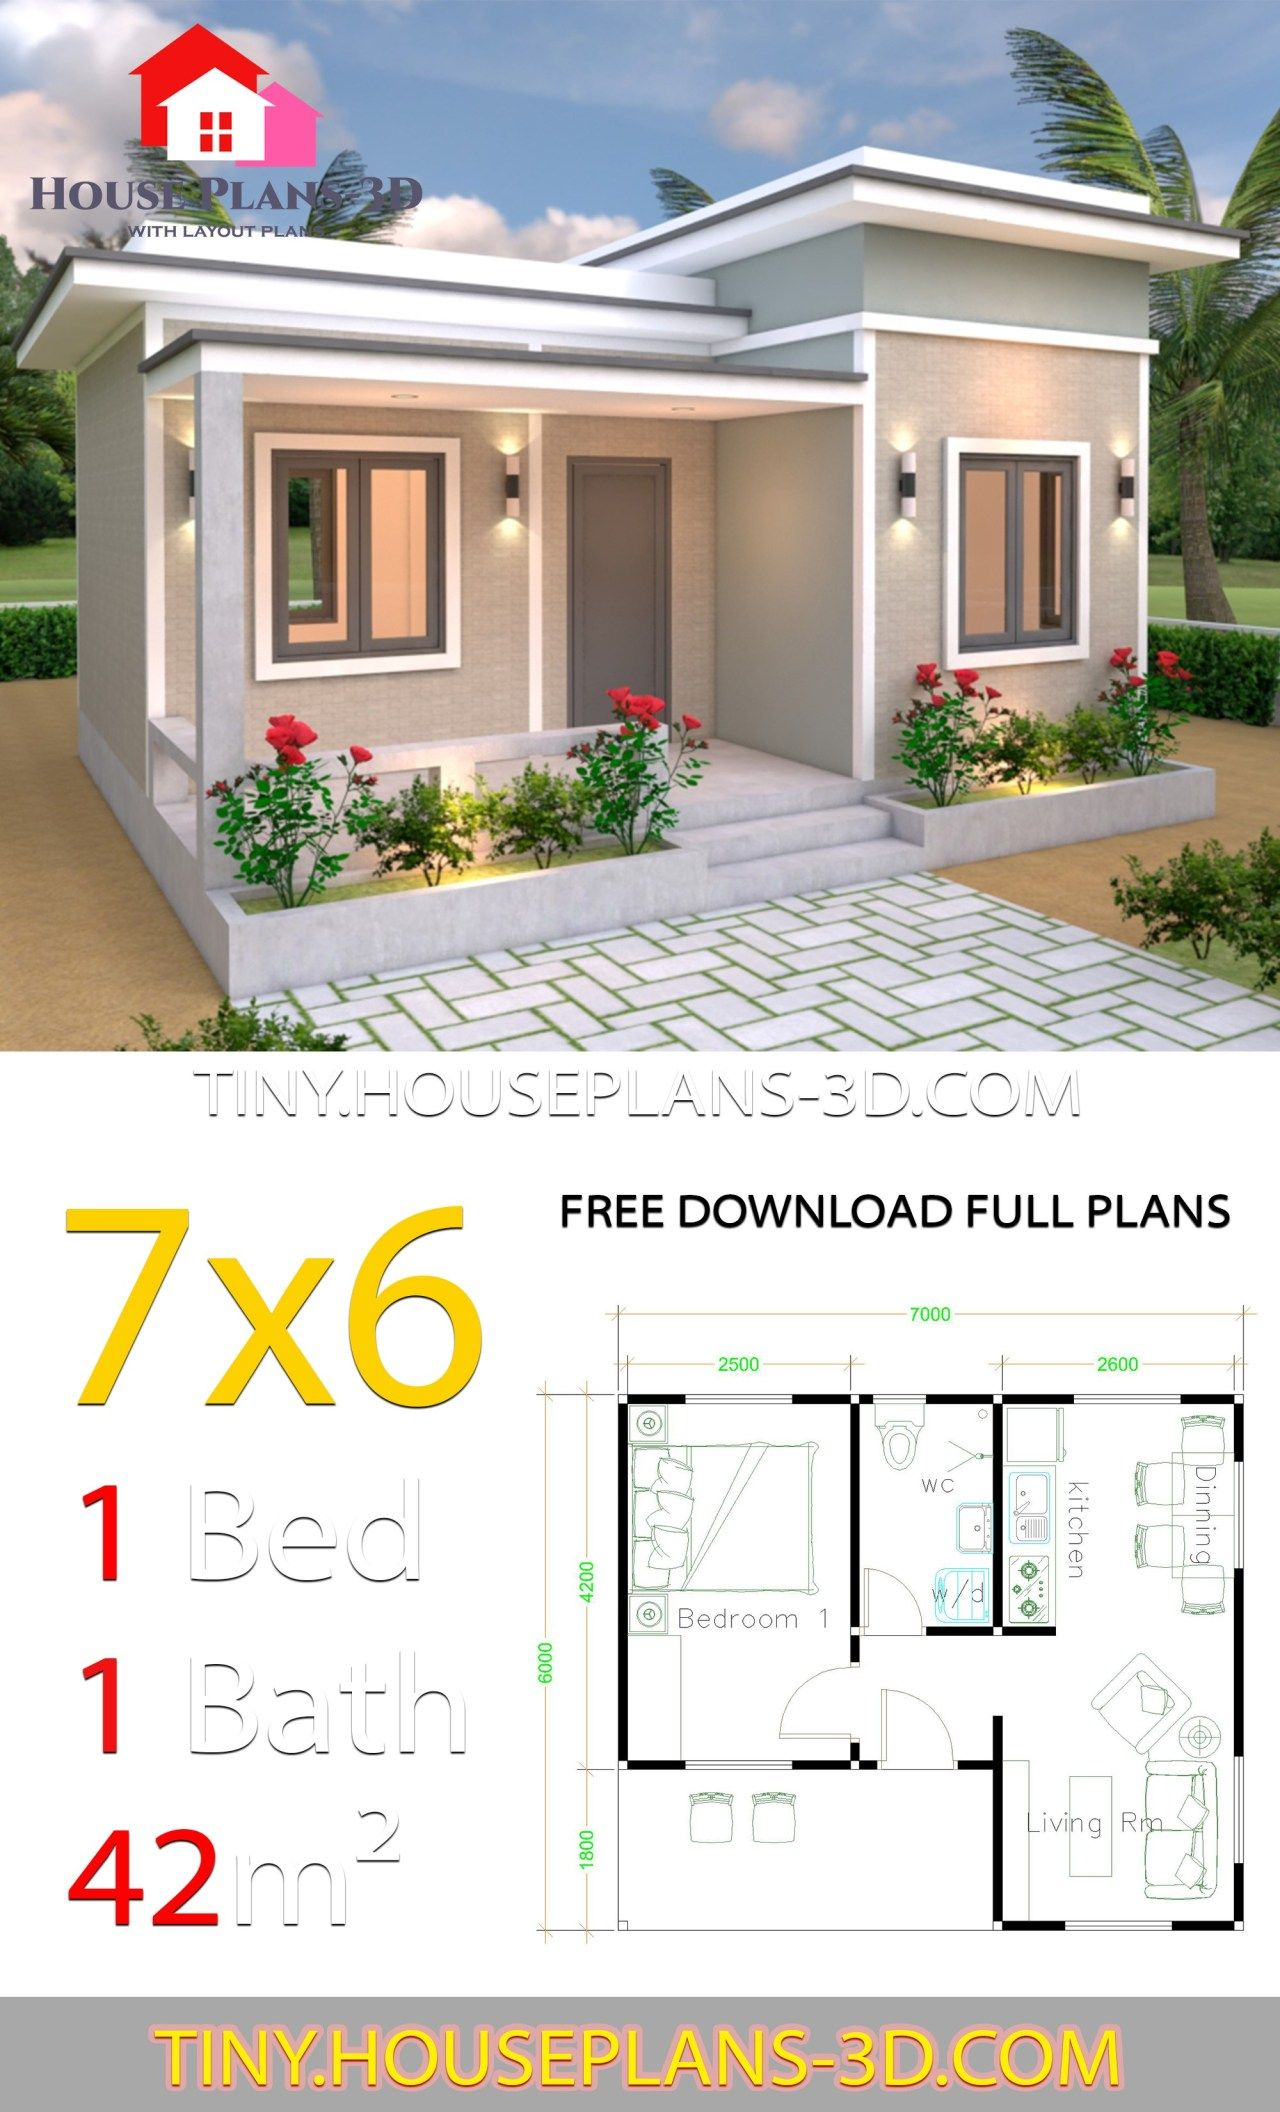 Tiny House Plans 7x6 With One Bedroom Flat Roof Tiny House Plans Flat Roof House One Bedroom House Plans Sims House Plans